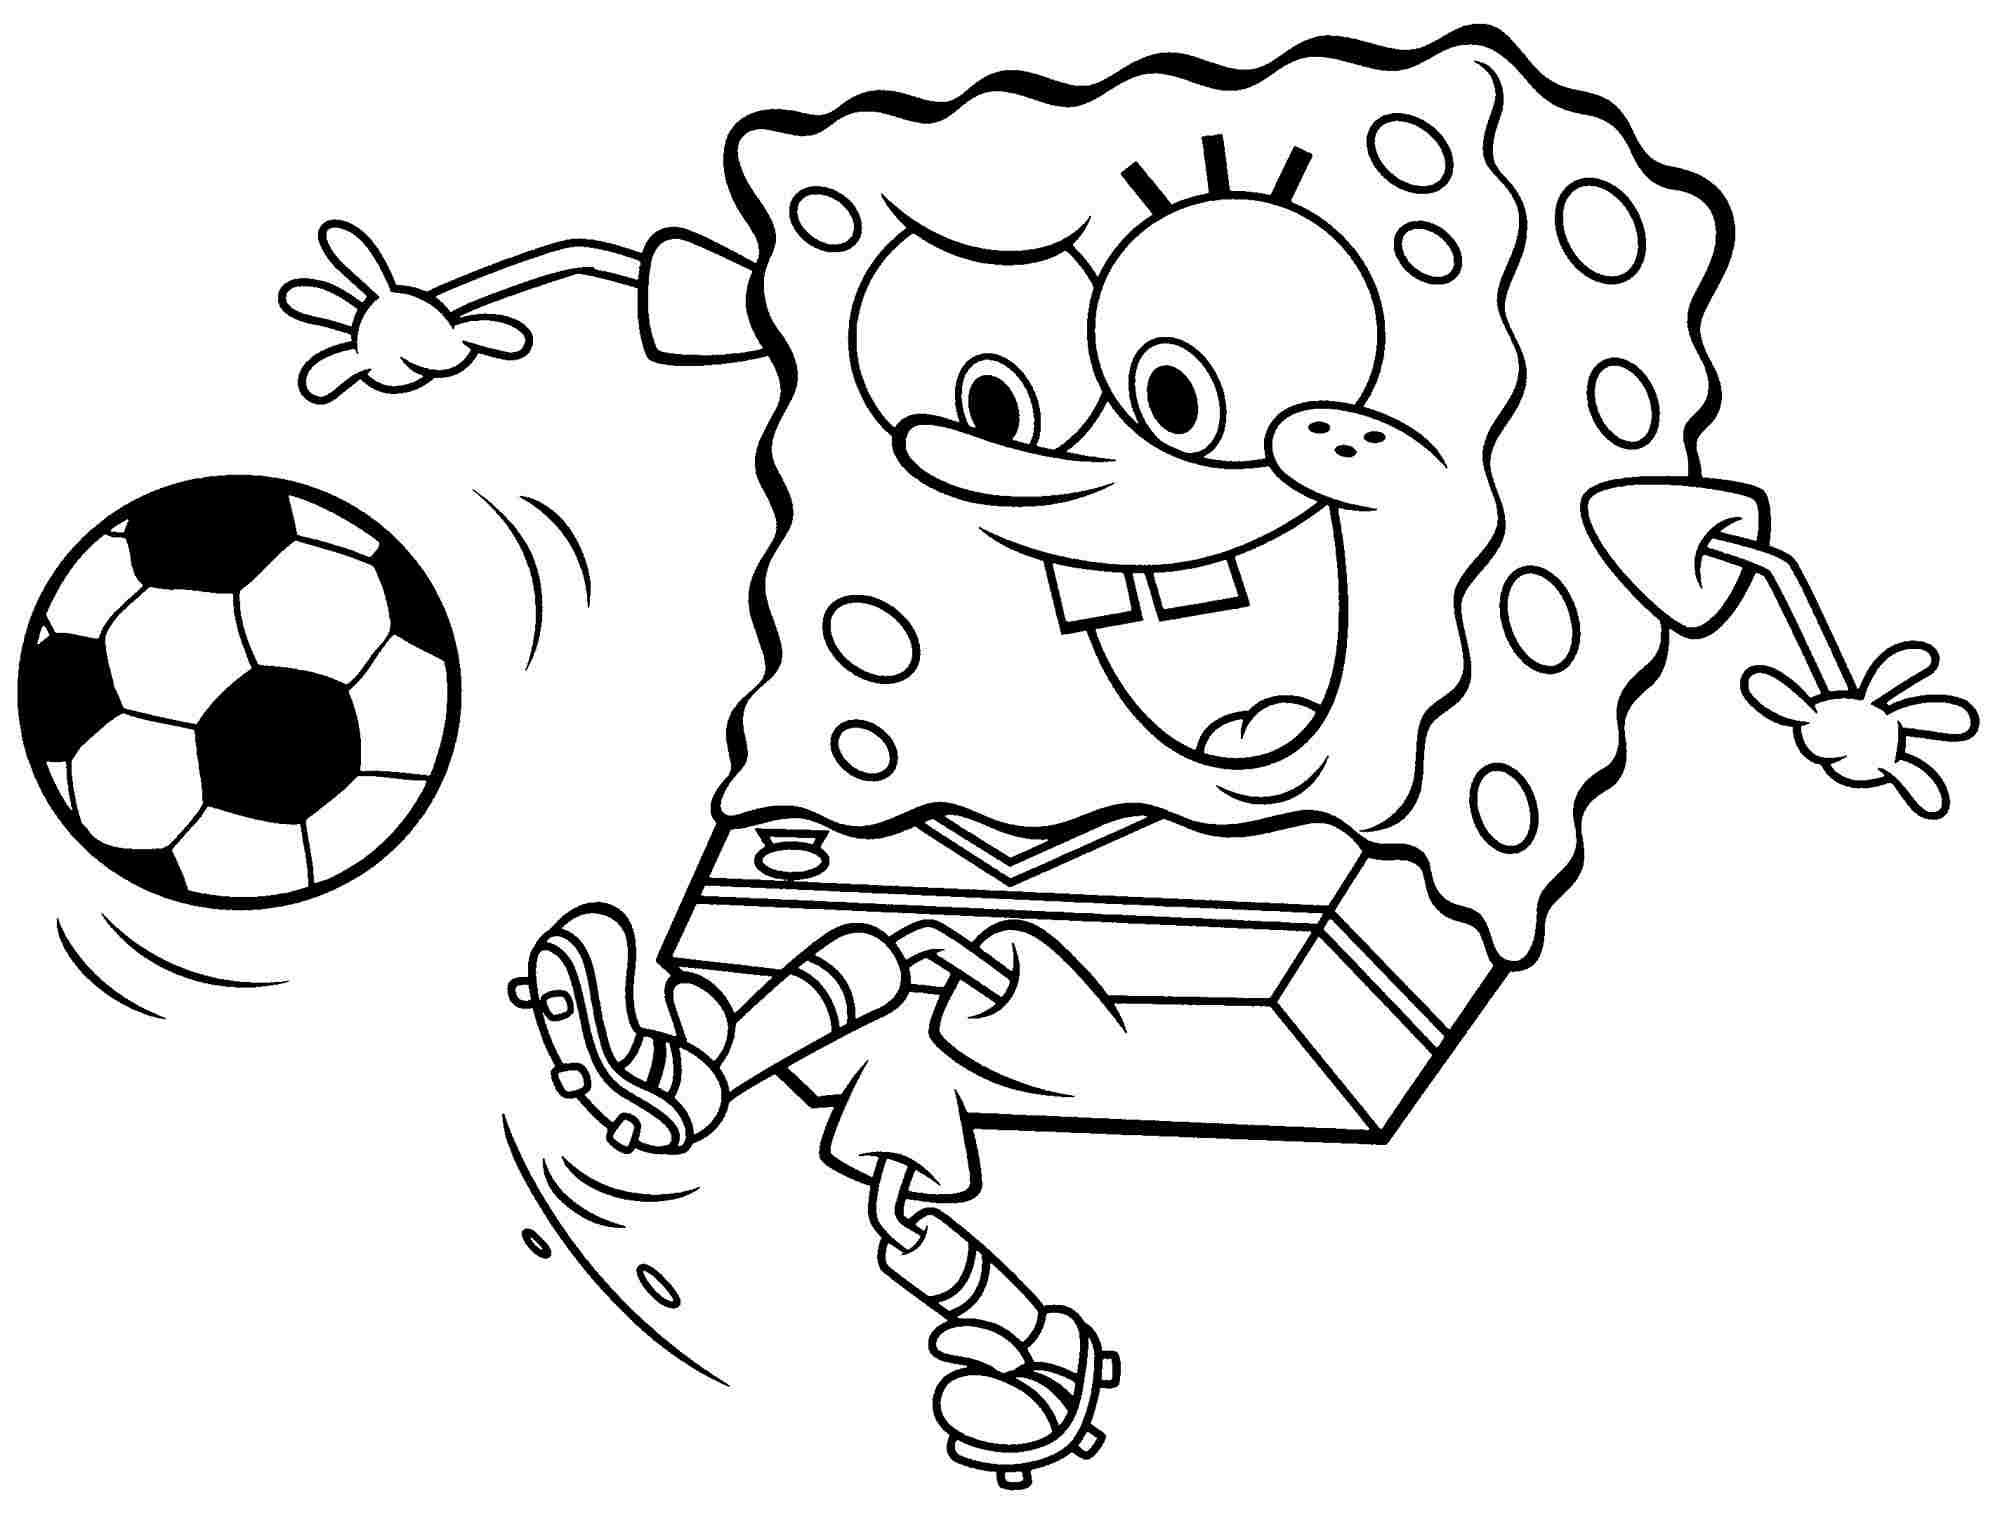 2000x1513 Free Spongebob Coloring Pages